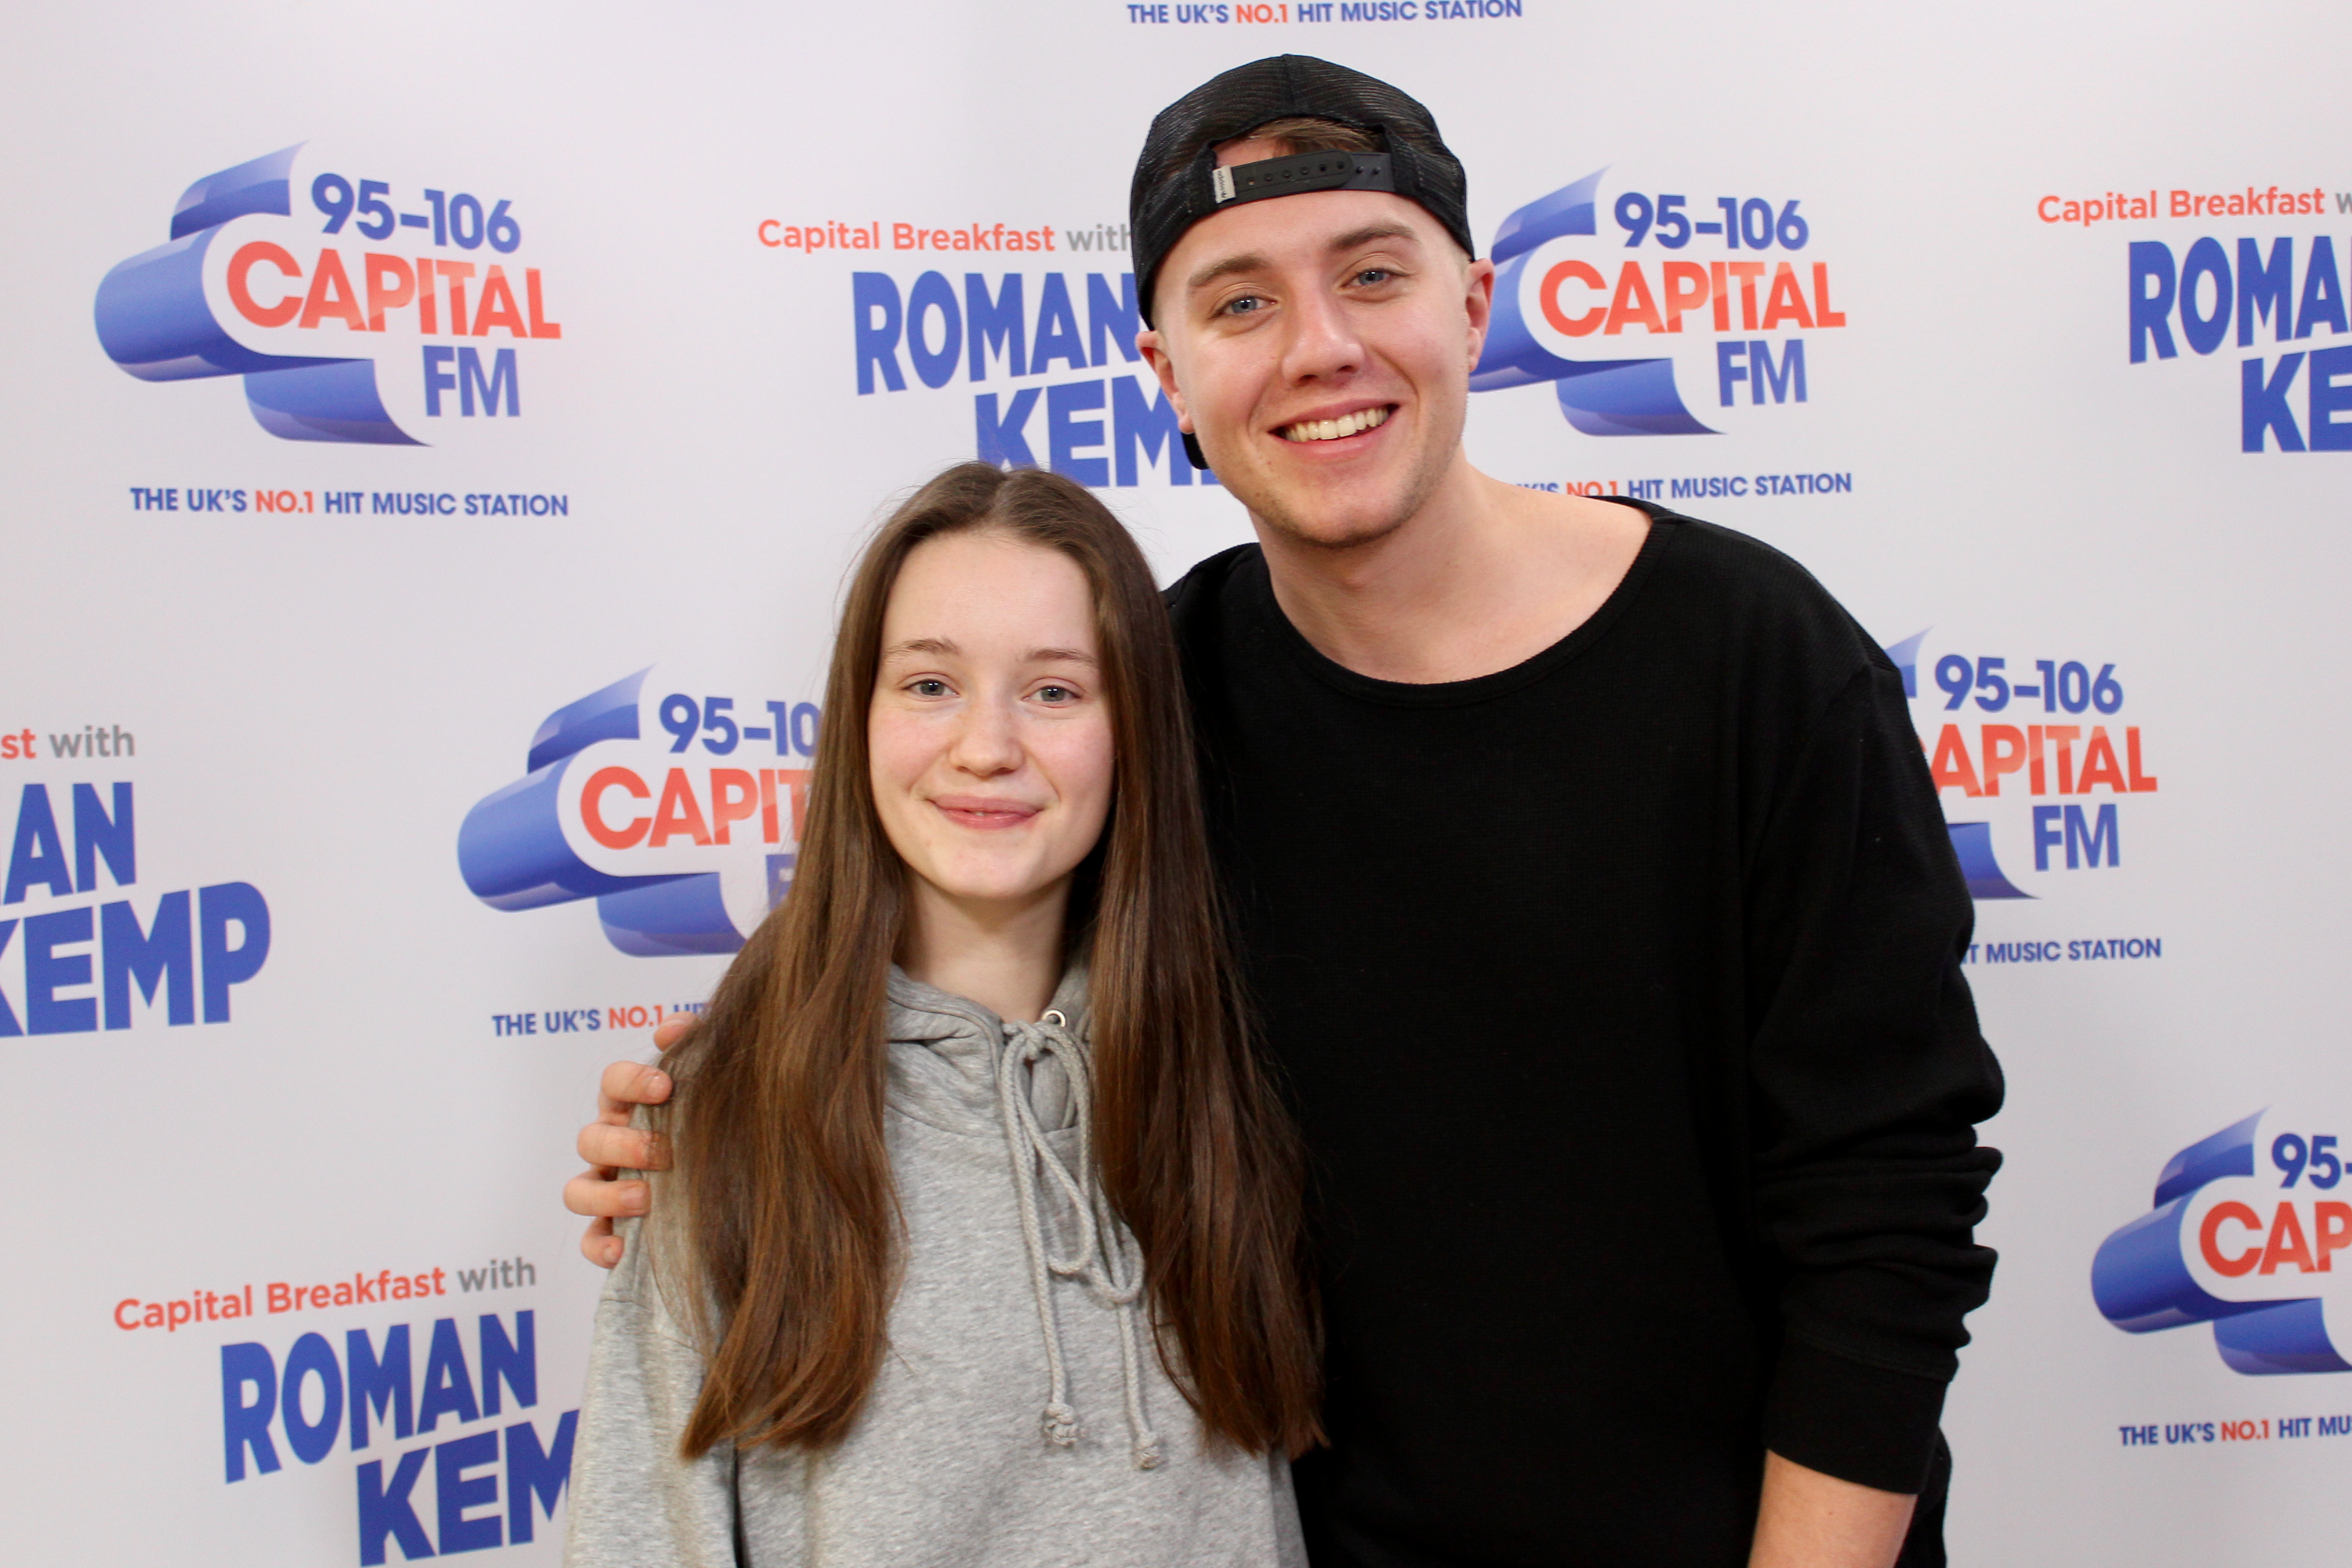 Sigrid on Capital Breakfast w/ Roman Kemp